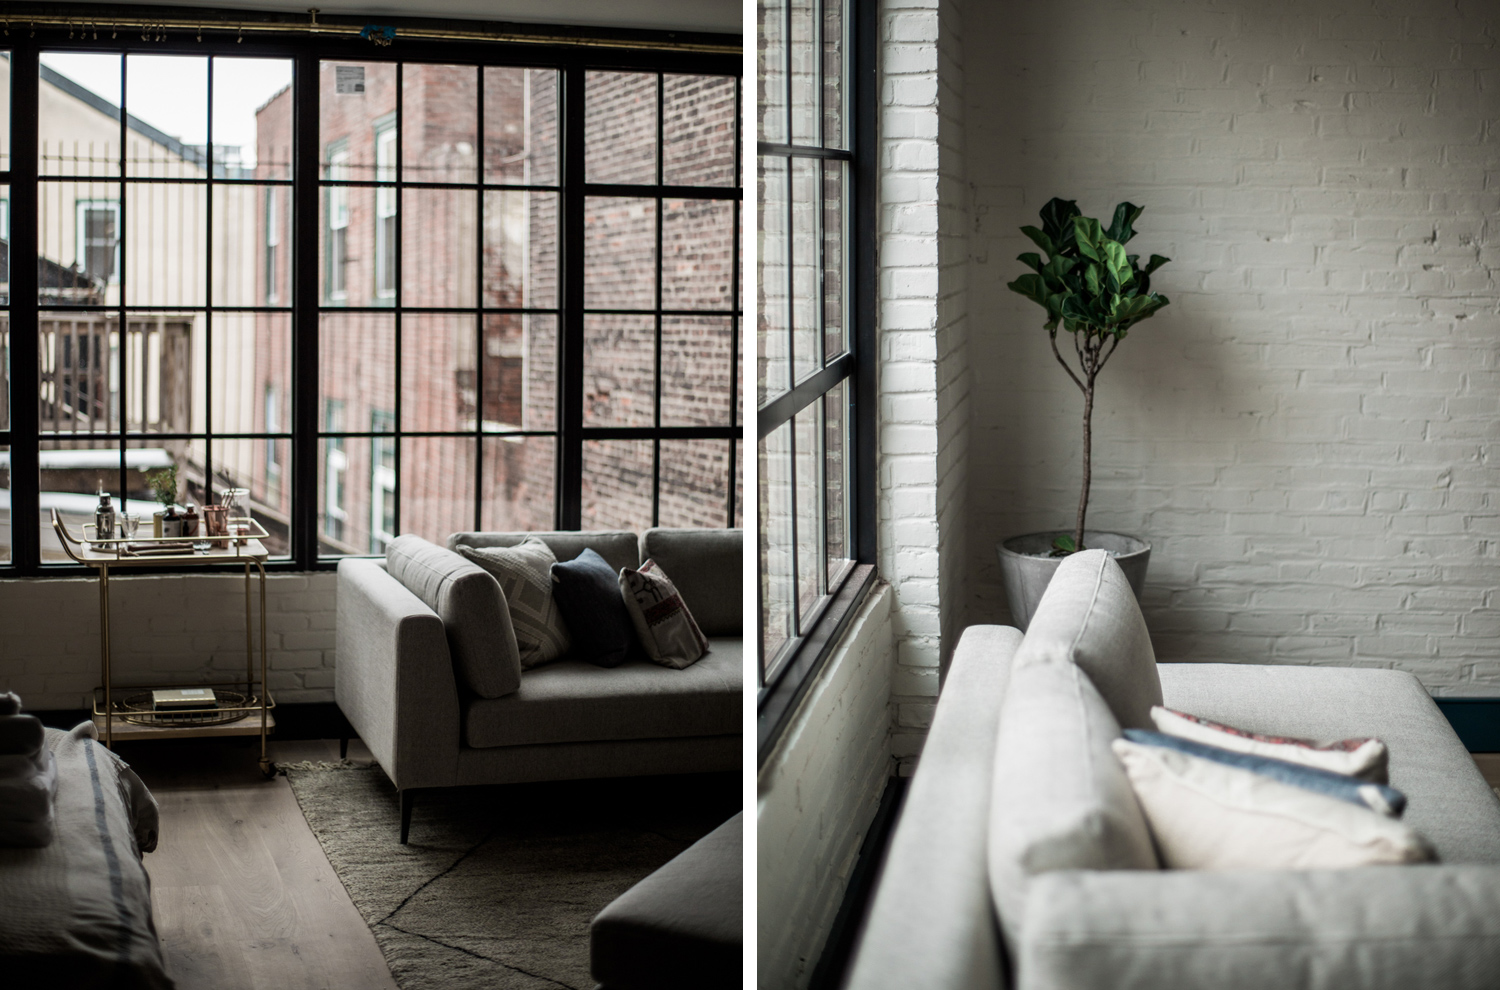 Siousca Photography_Lokal_Hotel_Philadelphia_design_style_boutique_philly_10.jpg